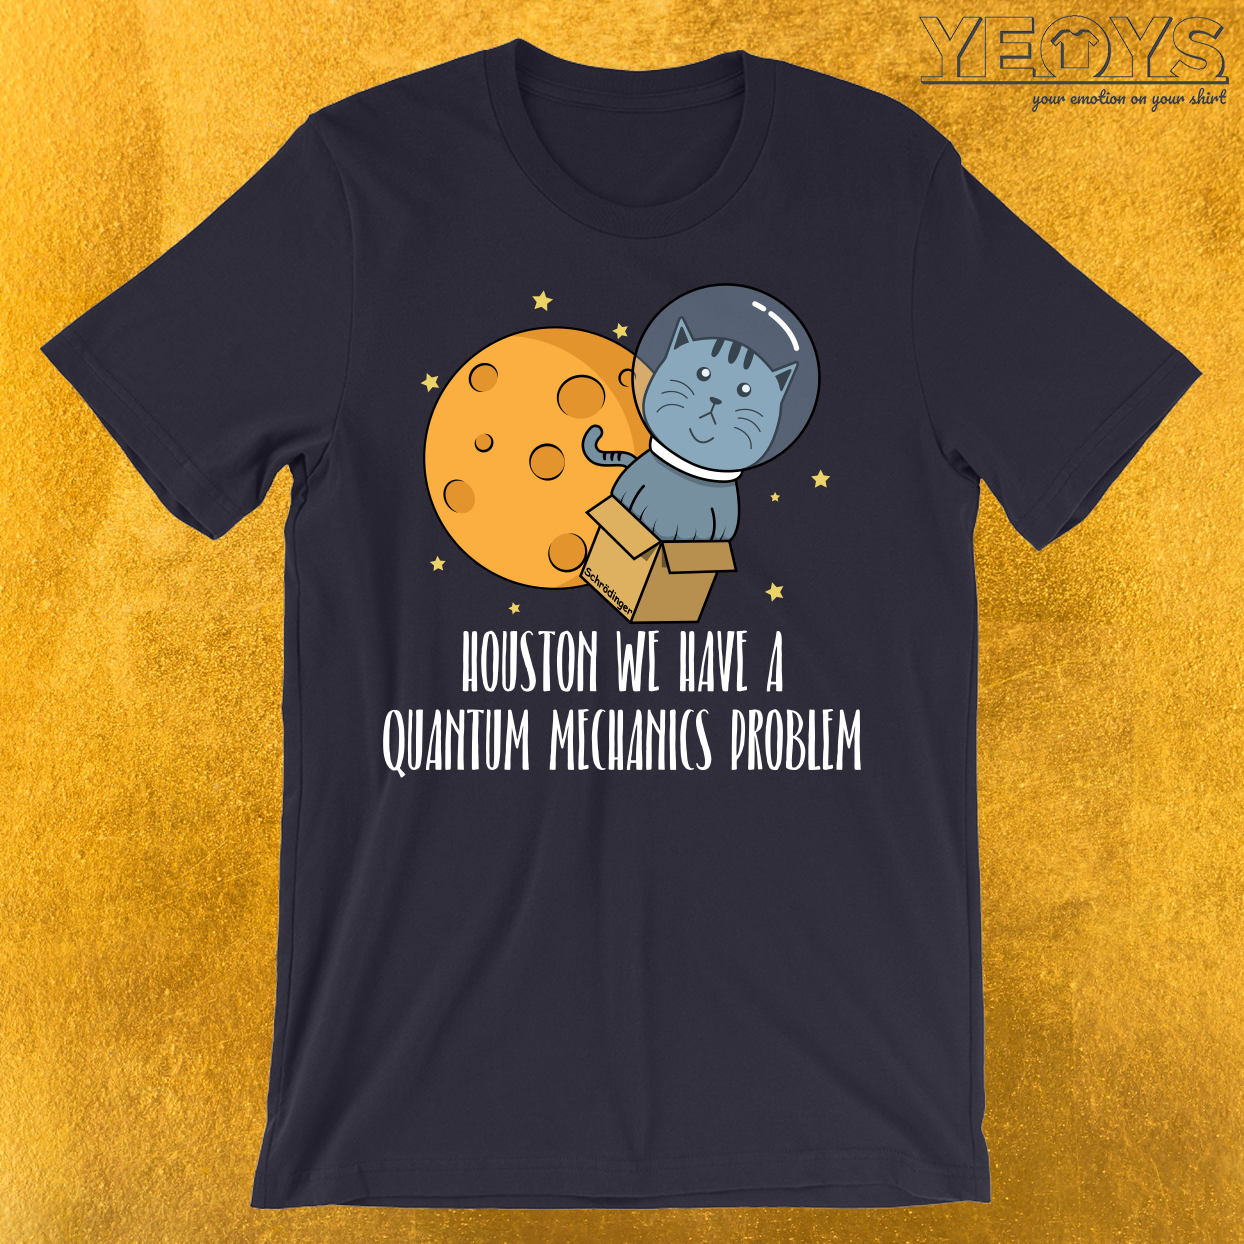 Houston We Have A Quantum Mechanics Problem T-Shirt